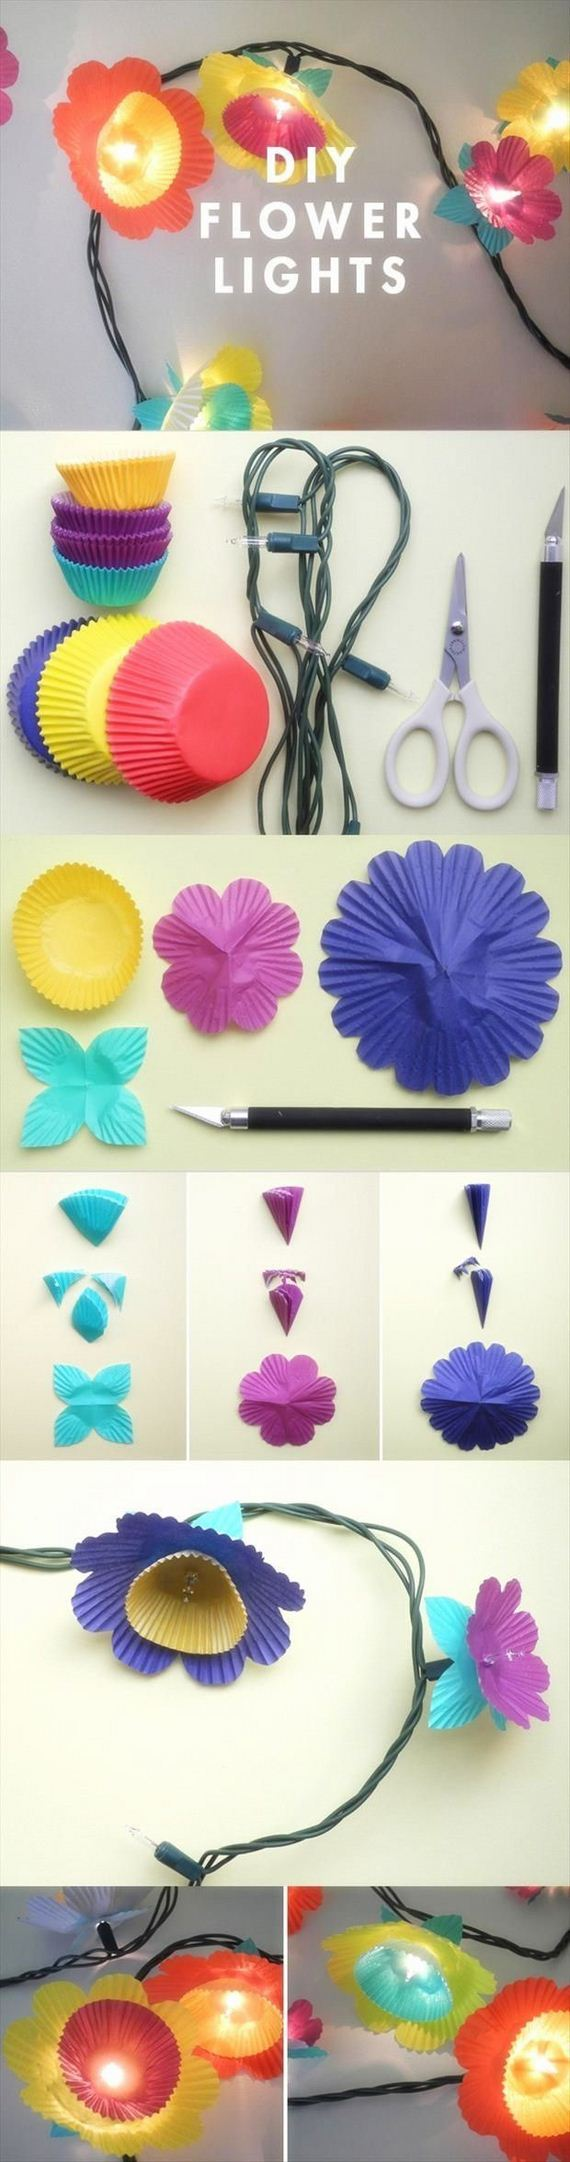 22-diy-home-craft-ideas-and-tips-thrifty-home-decor-1